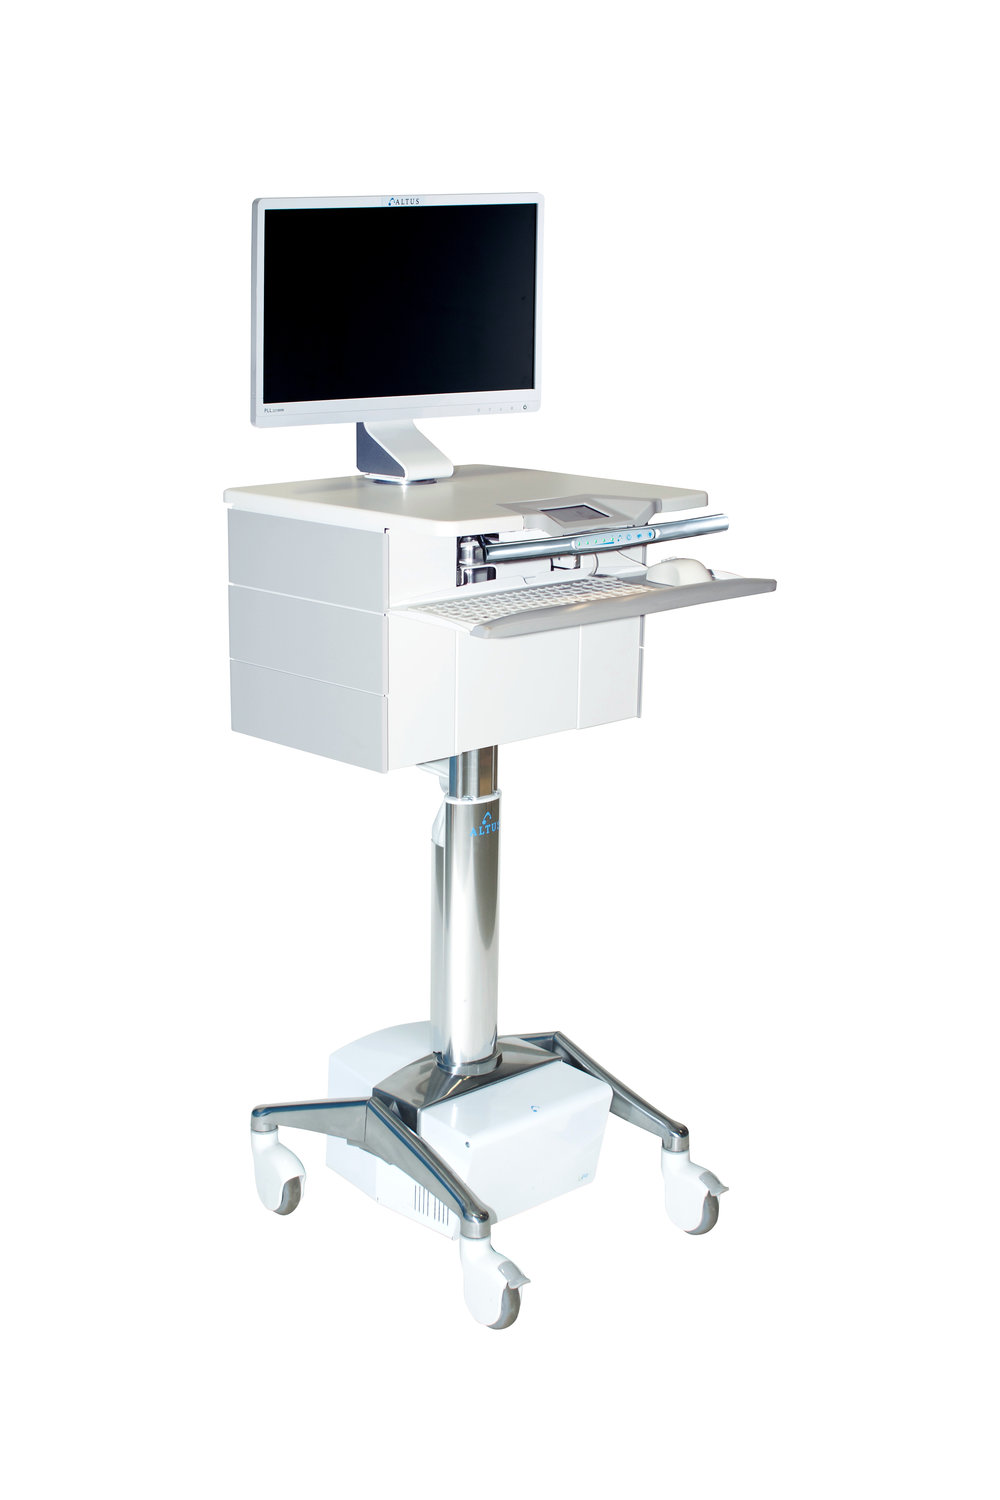 ClioMed Medication Cart - All-in-One